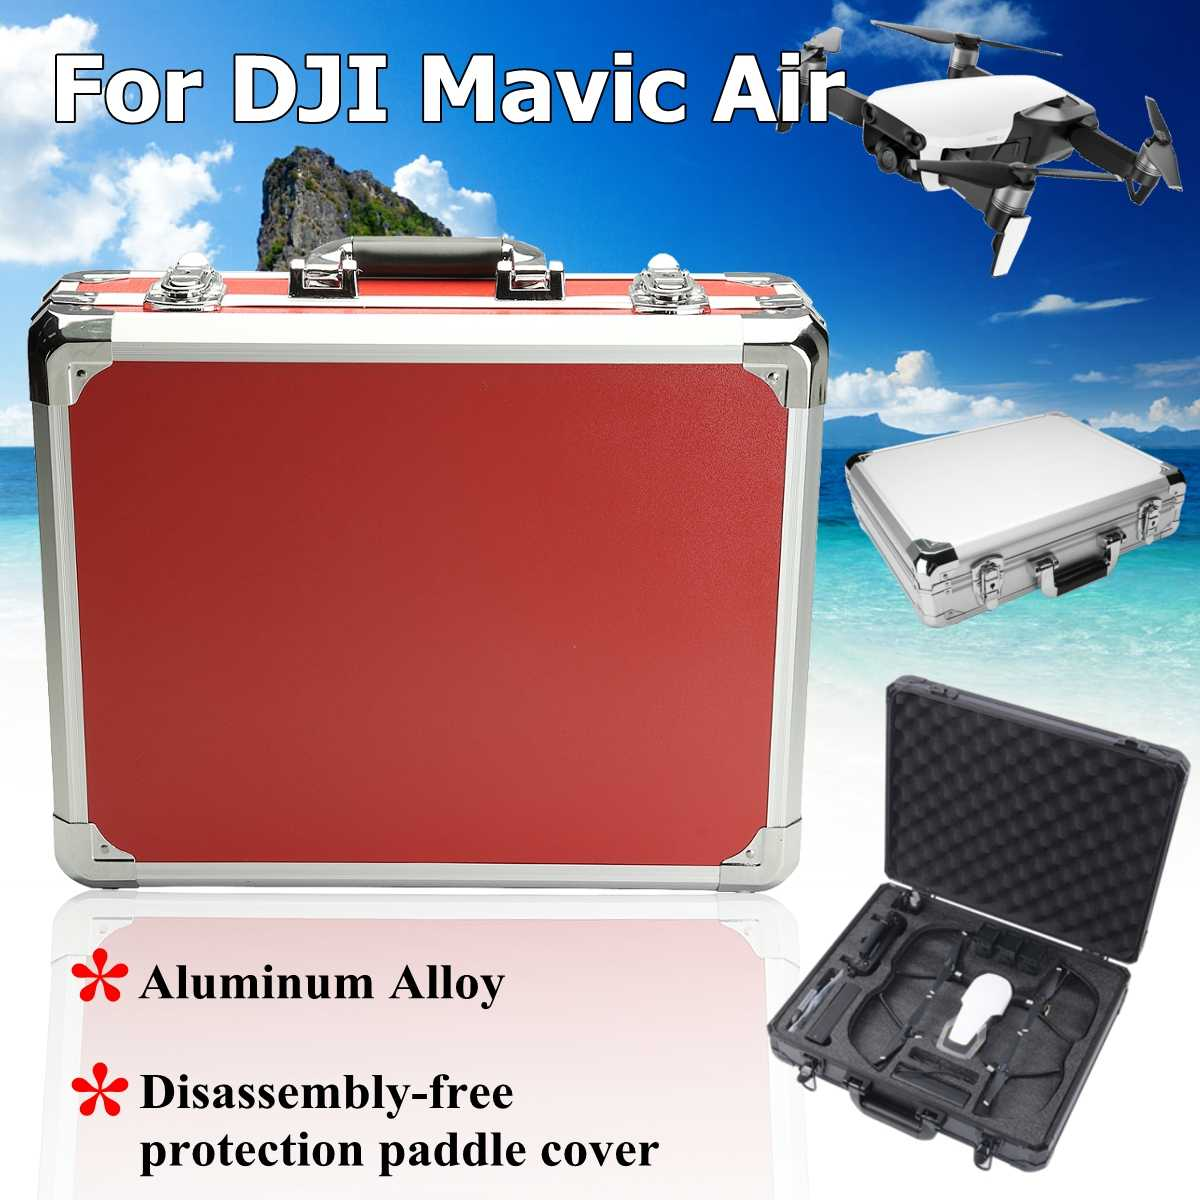 a Red black silver platinum large capaweight Aluminum alloy plus MDF Carrying Case for DJI Mavic Air in Black